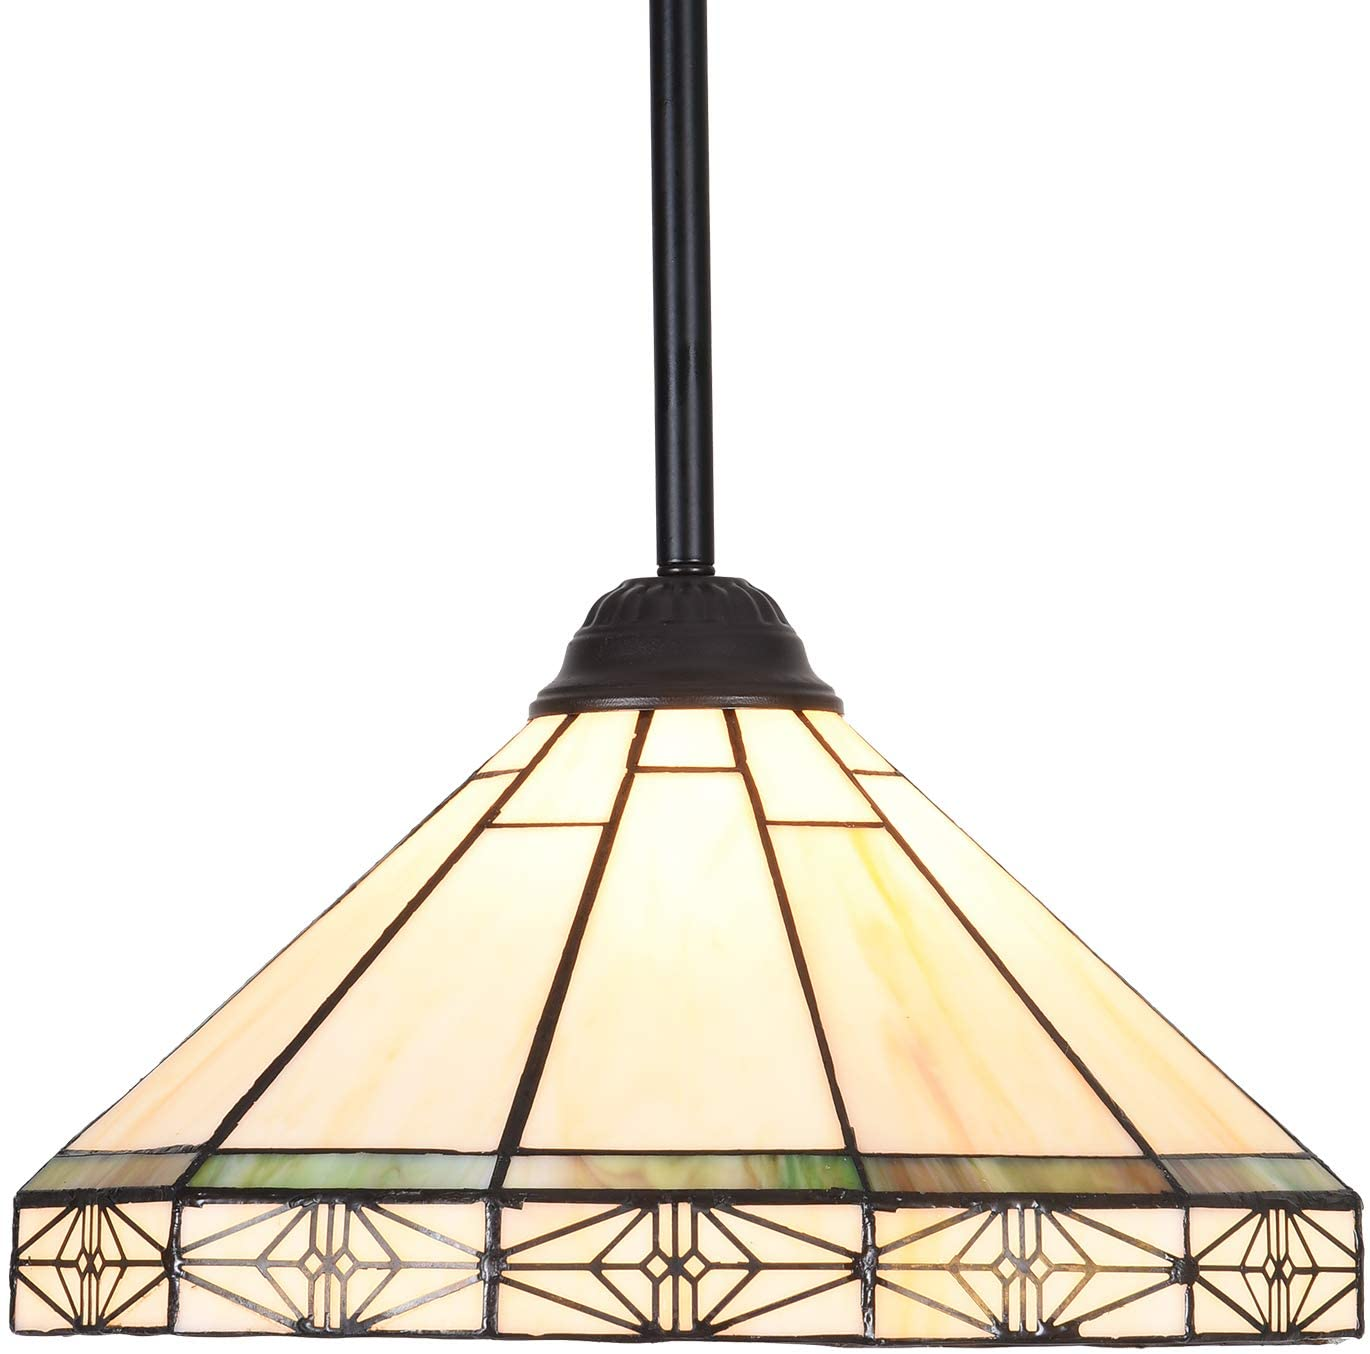 Capulina Tiffany Style Kitchen Lighting, 1-Light Stained Glass Lighting Fixtures, 12.2 inch Wide Lampshade Mini Pendant Light, Mission Style Kitchen Island Lighting, Tiffany Hanging Pendant Light